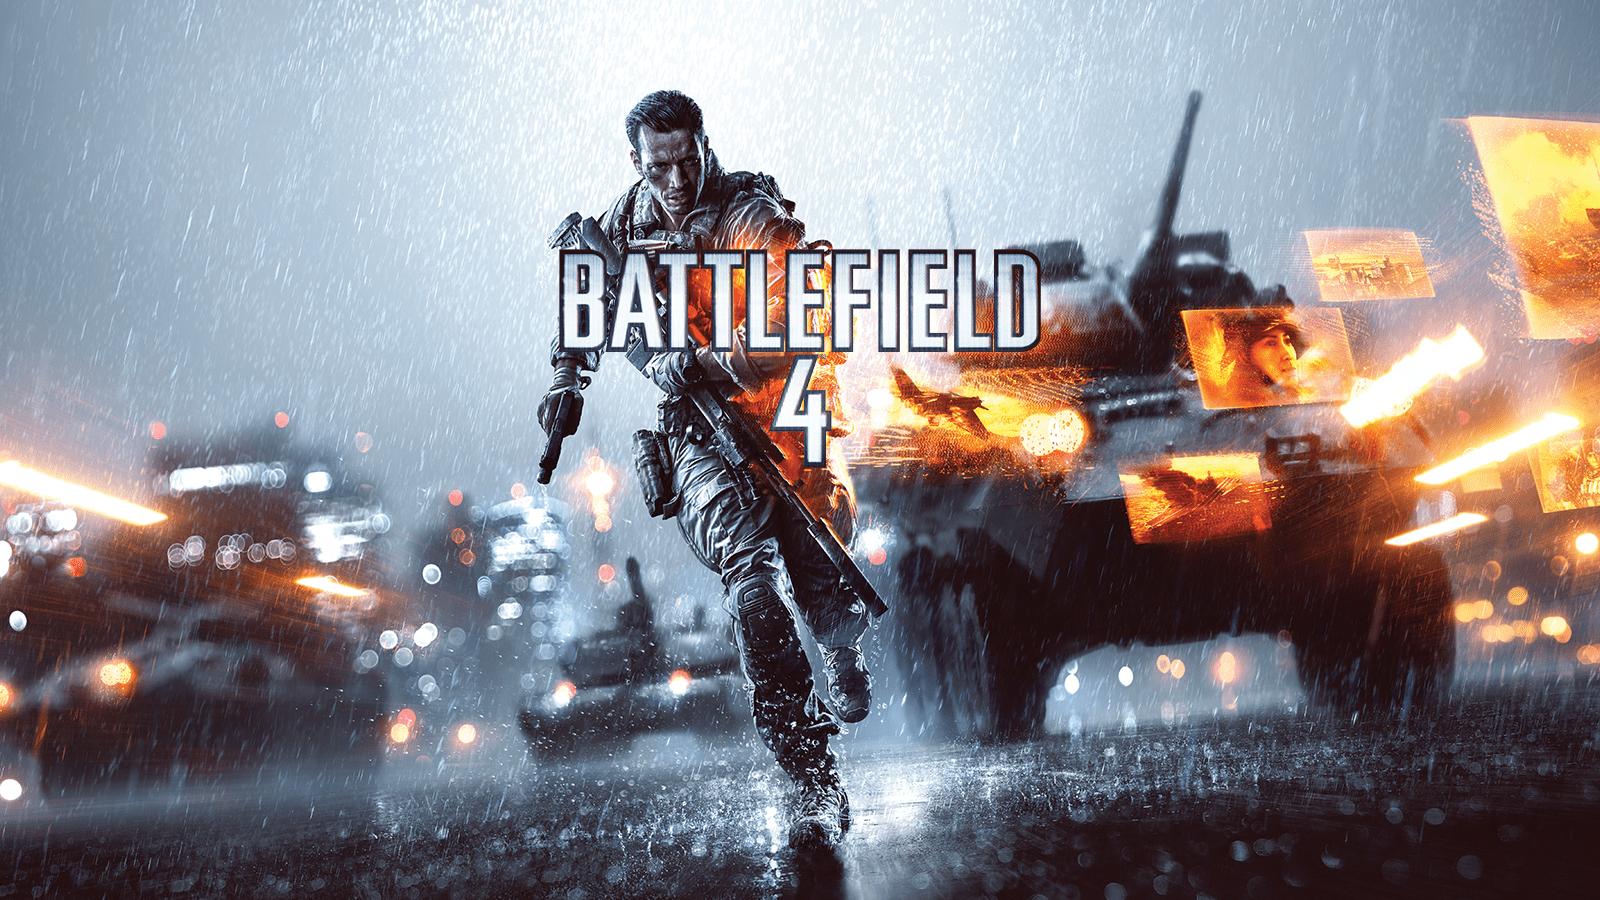 We went back to Battlefield 4